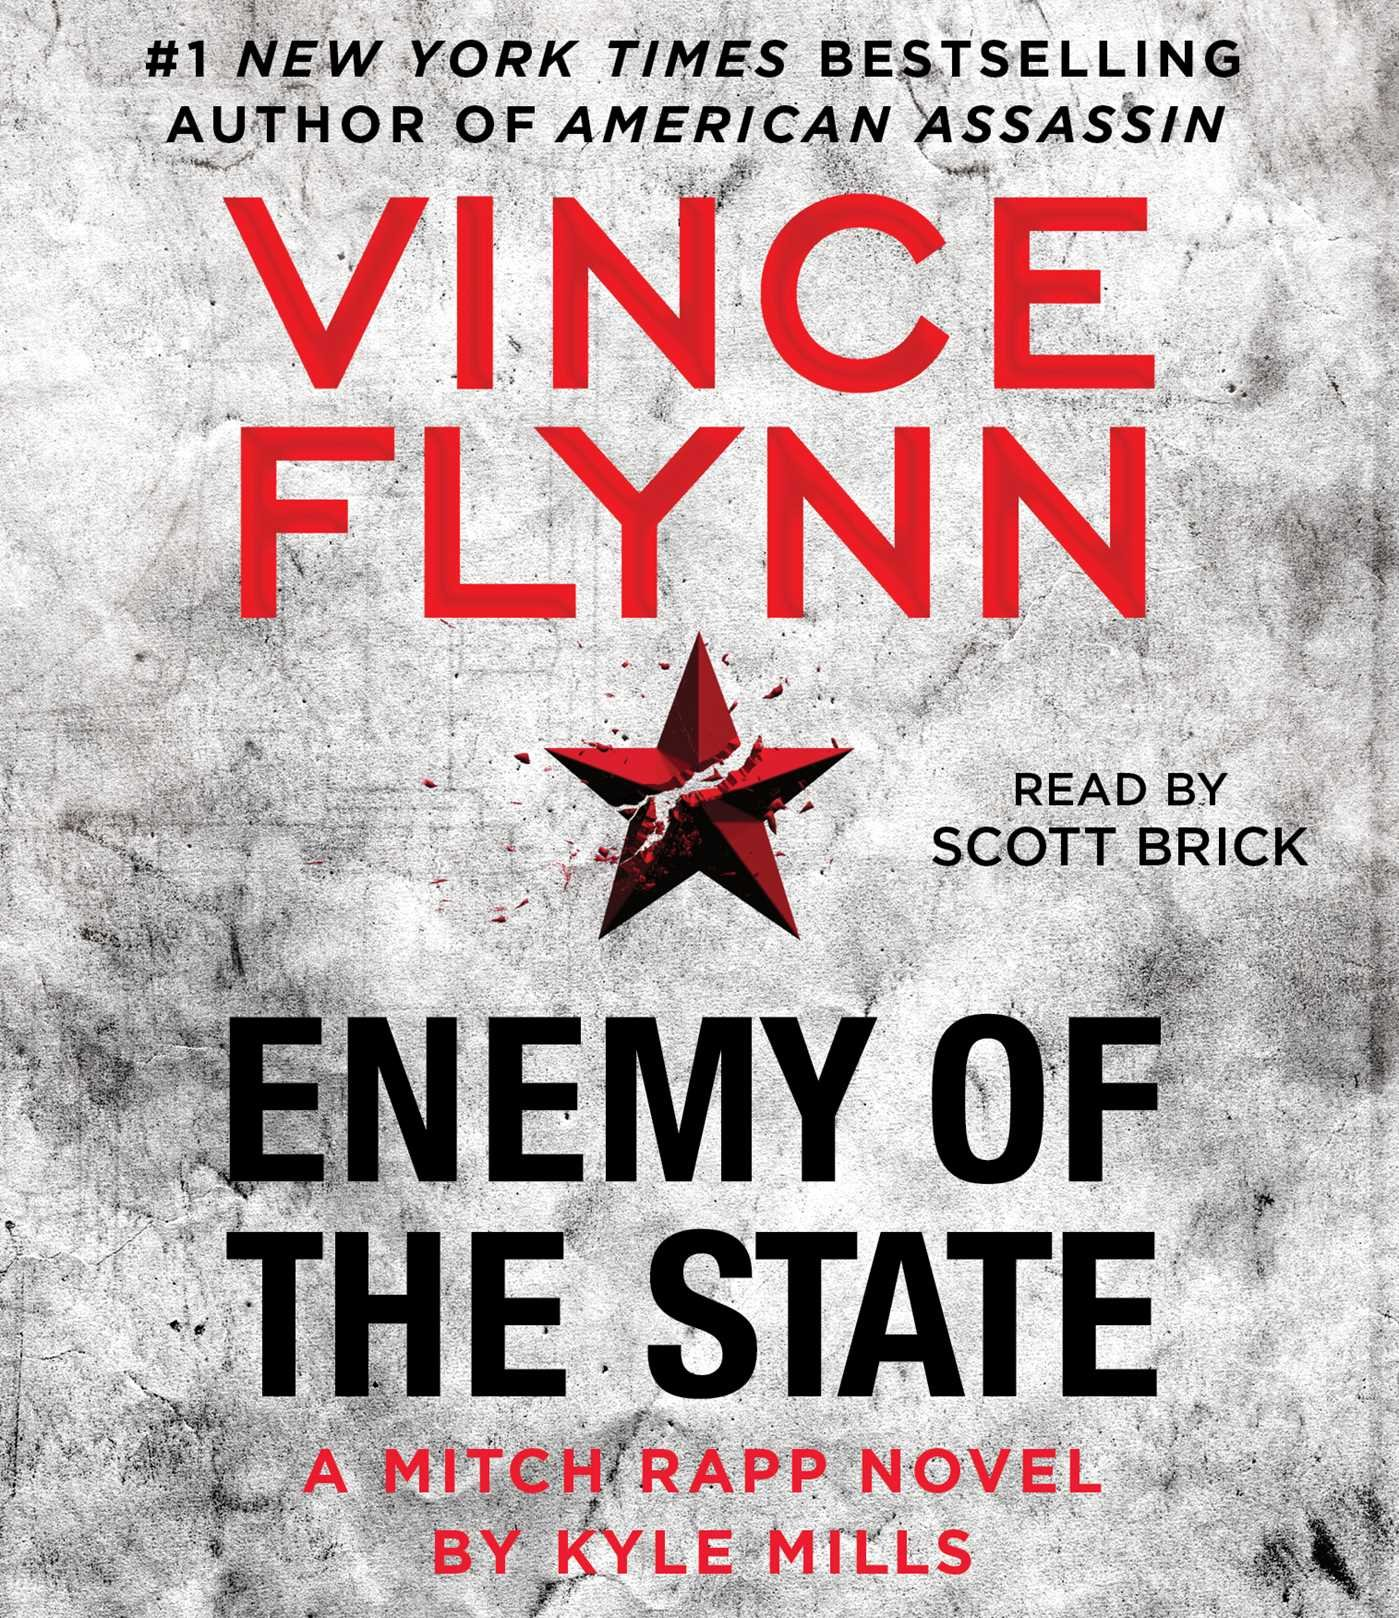 recipe: enemy of the state (a mitch rapp novel) [12]